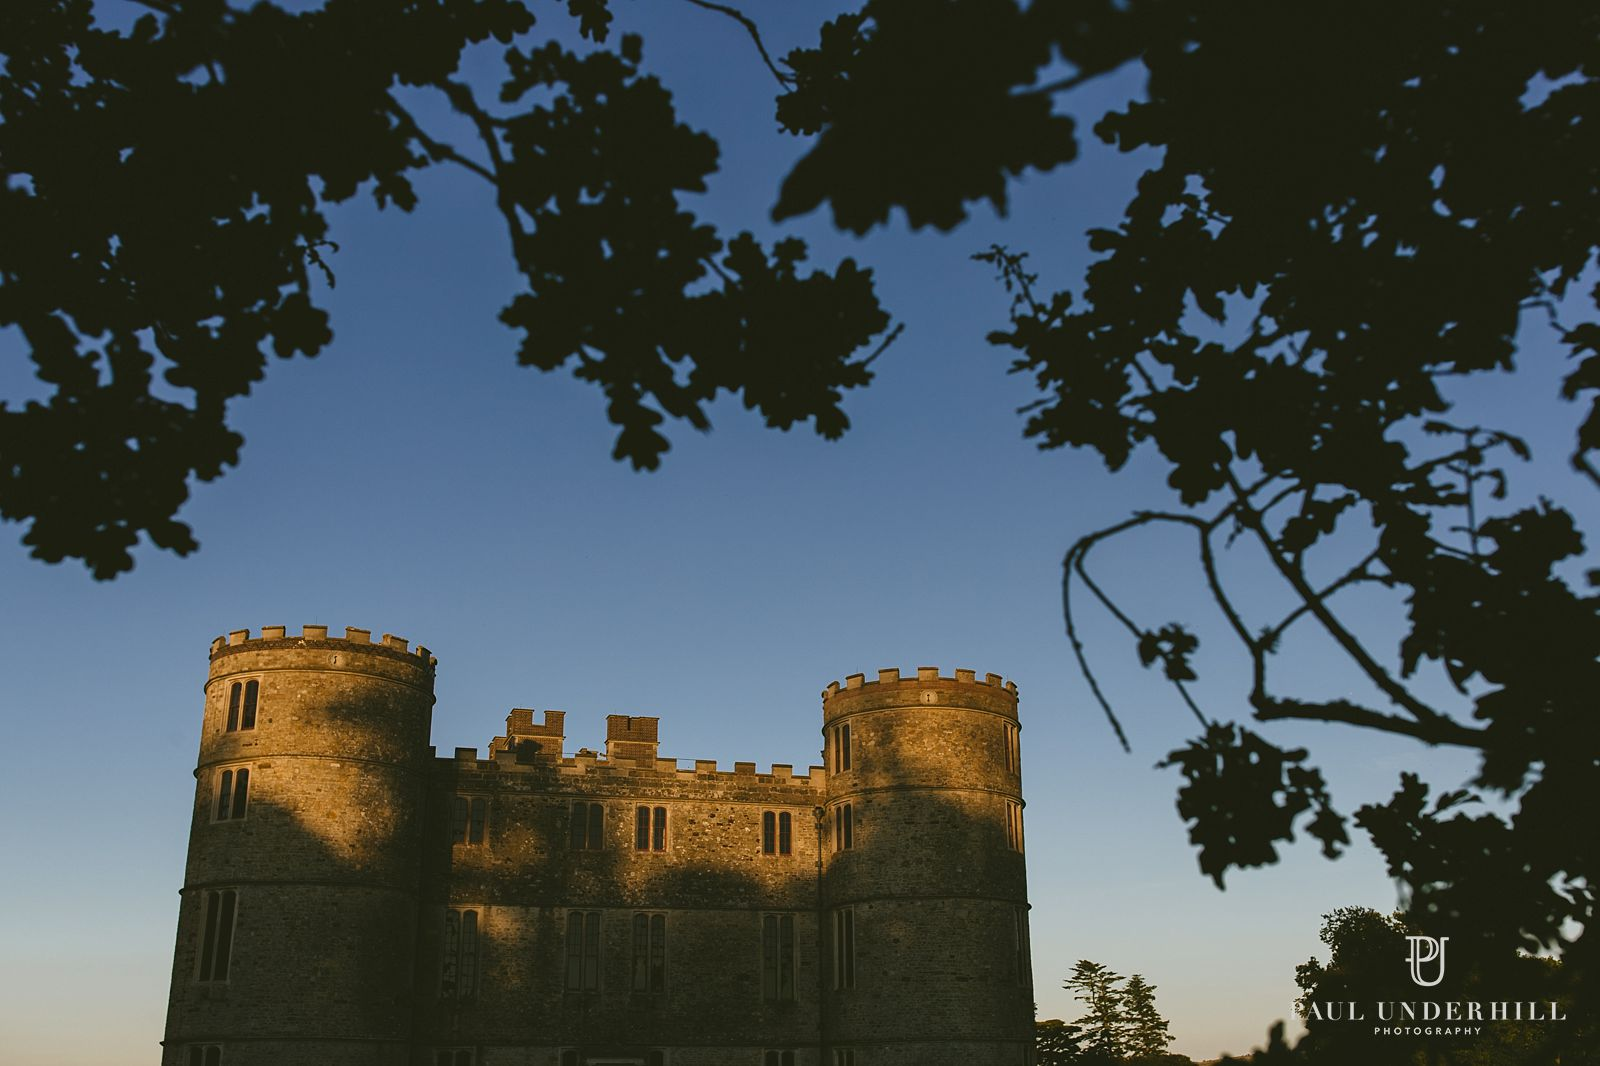 lulworth-castle-at-sunset